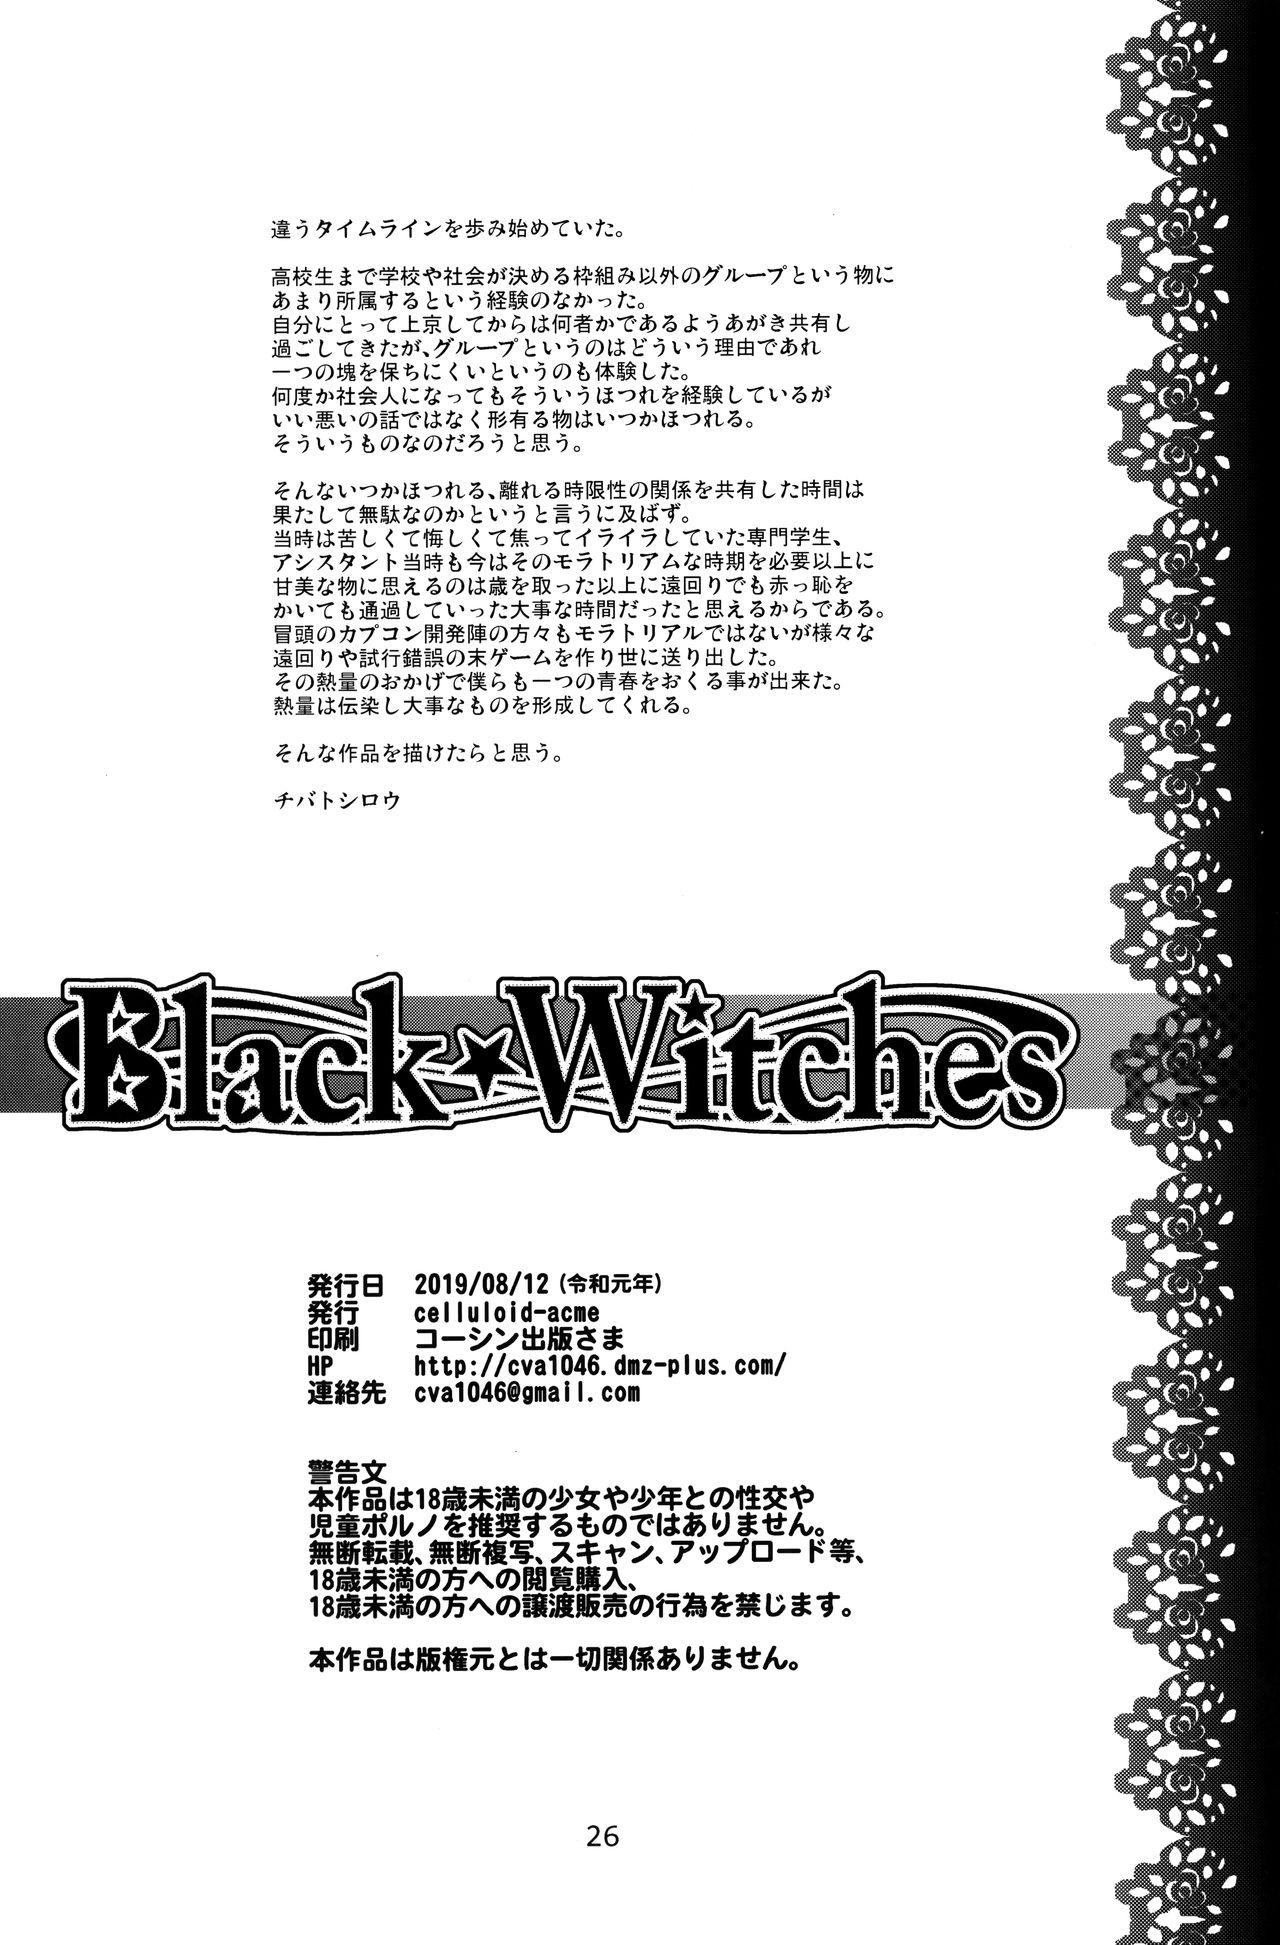 Black Witches 2 24